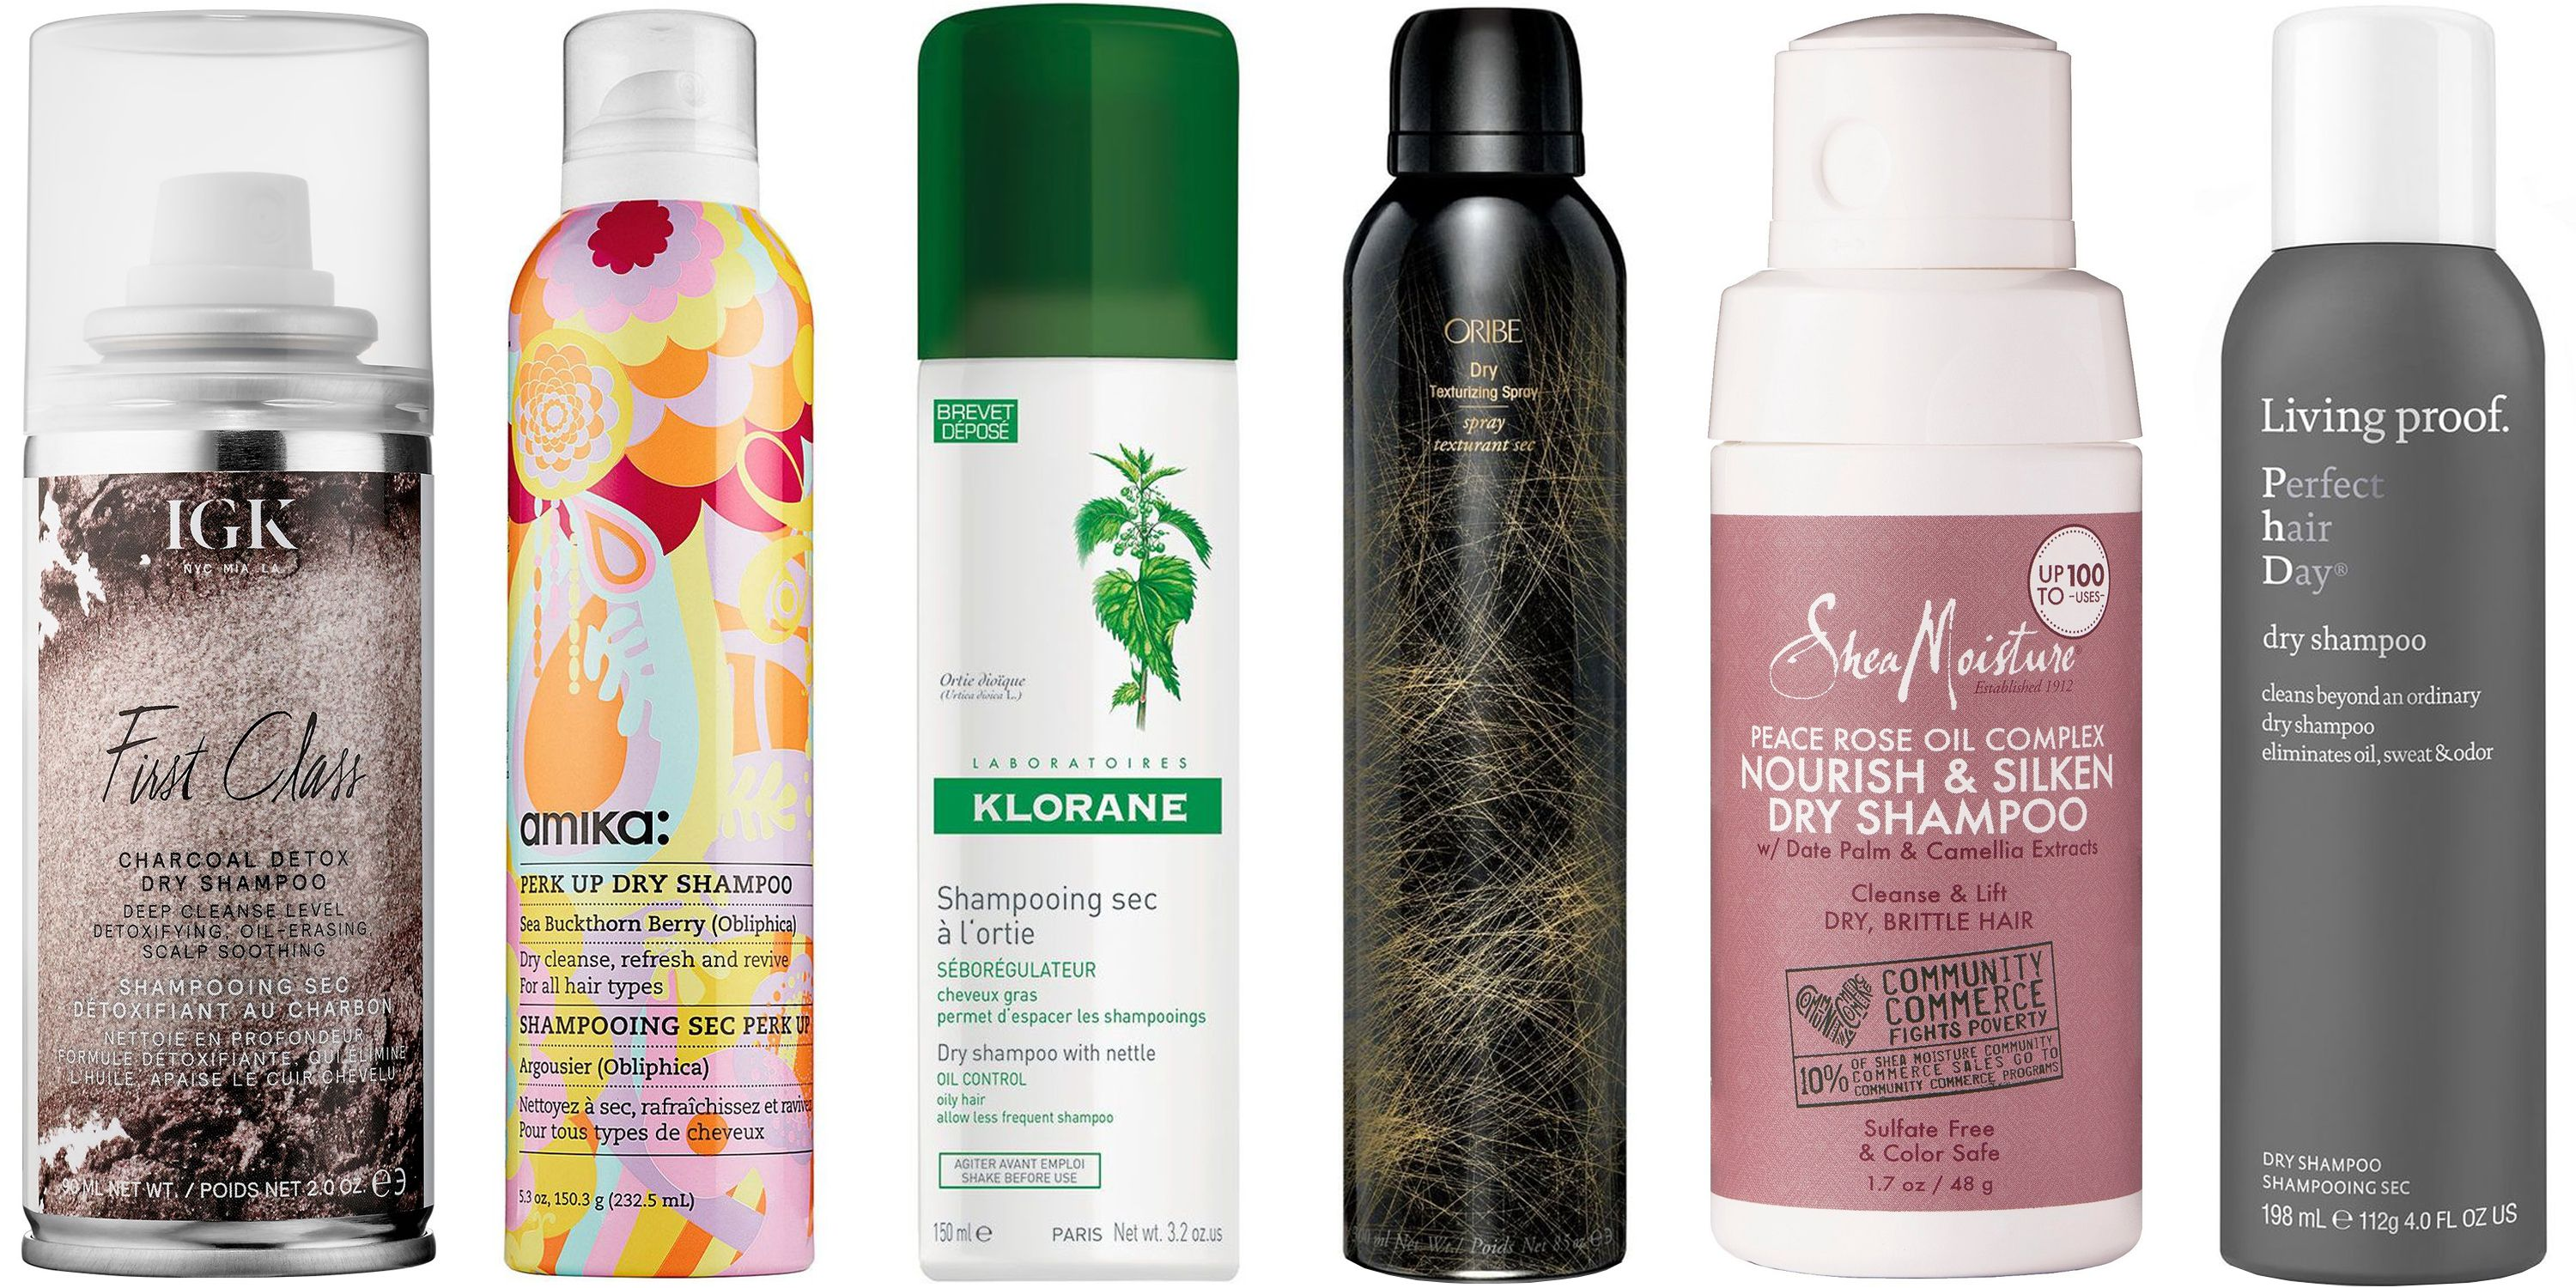 16 Best Dry Shampoo Picks 2020 Top Dry Shampoo Brands For Dry And Oily Hair